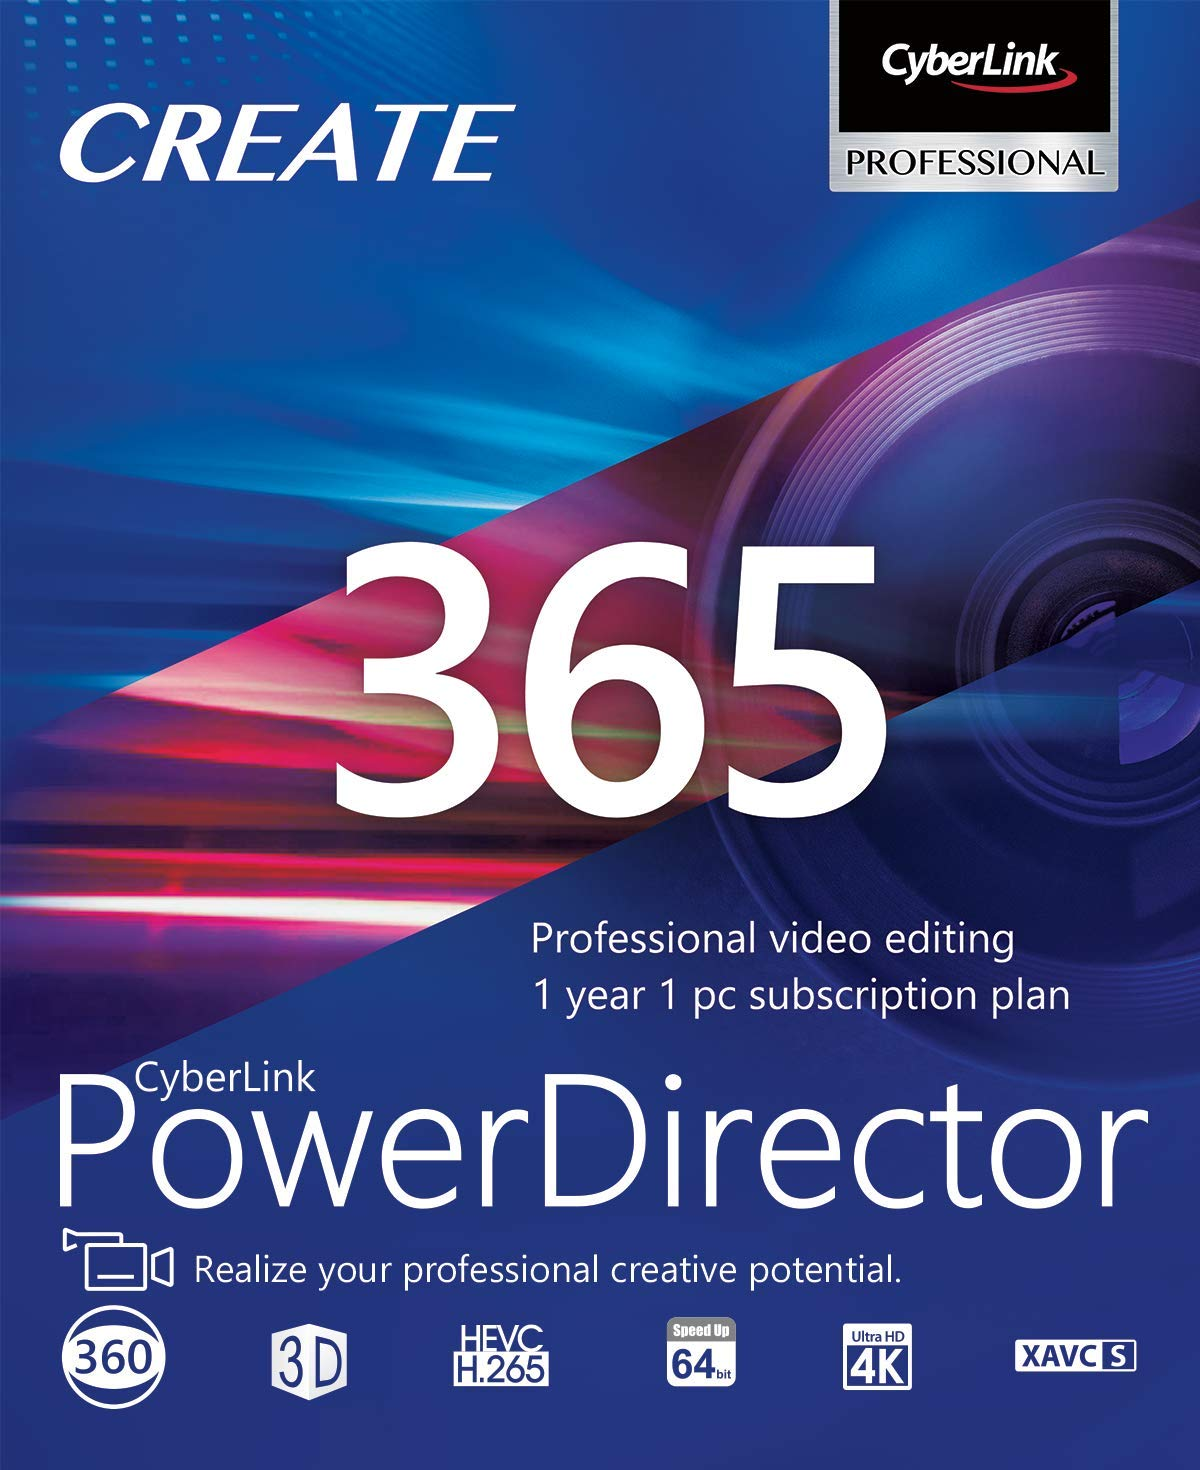 CyberLink PowerDirector 365 - 1 year subscription [PC Download] by Cyberlink